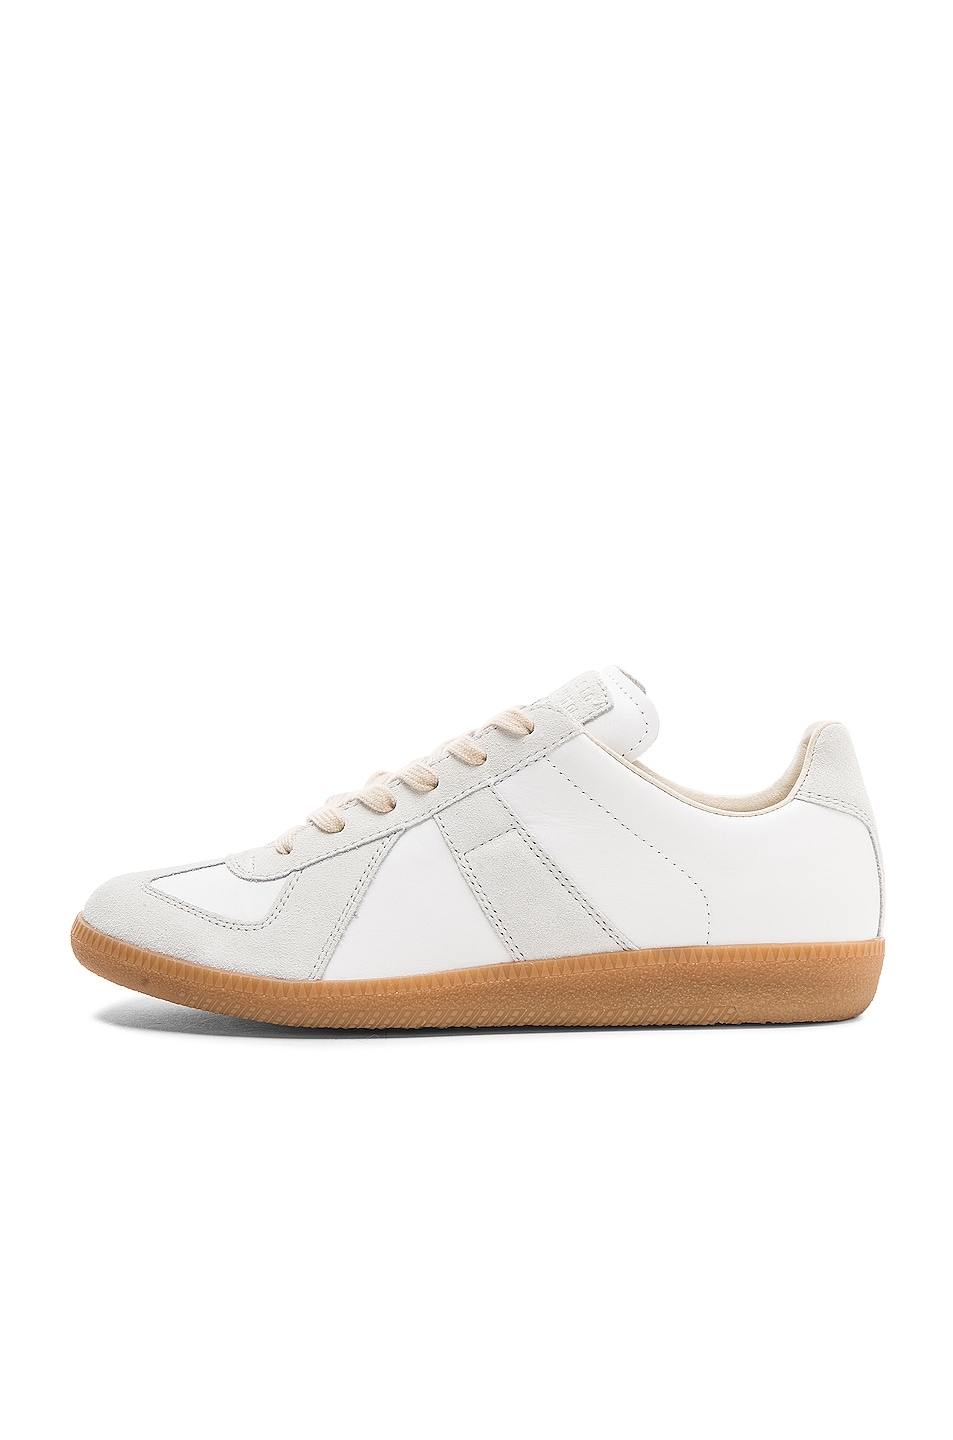 Image 5 of Maison Margiela Replica Calf & Lambskin Leather Sneakers in White